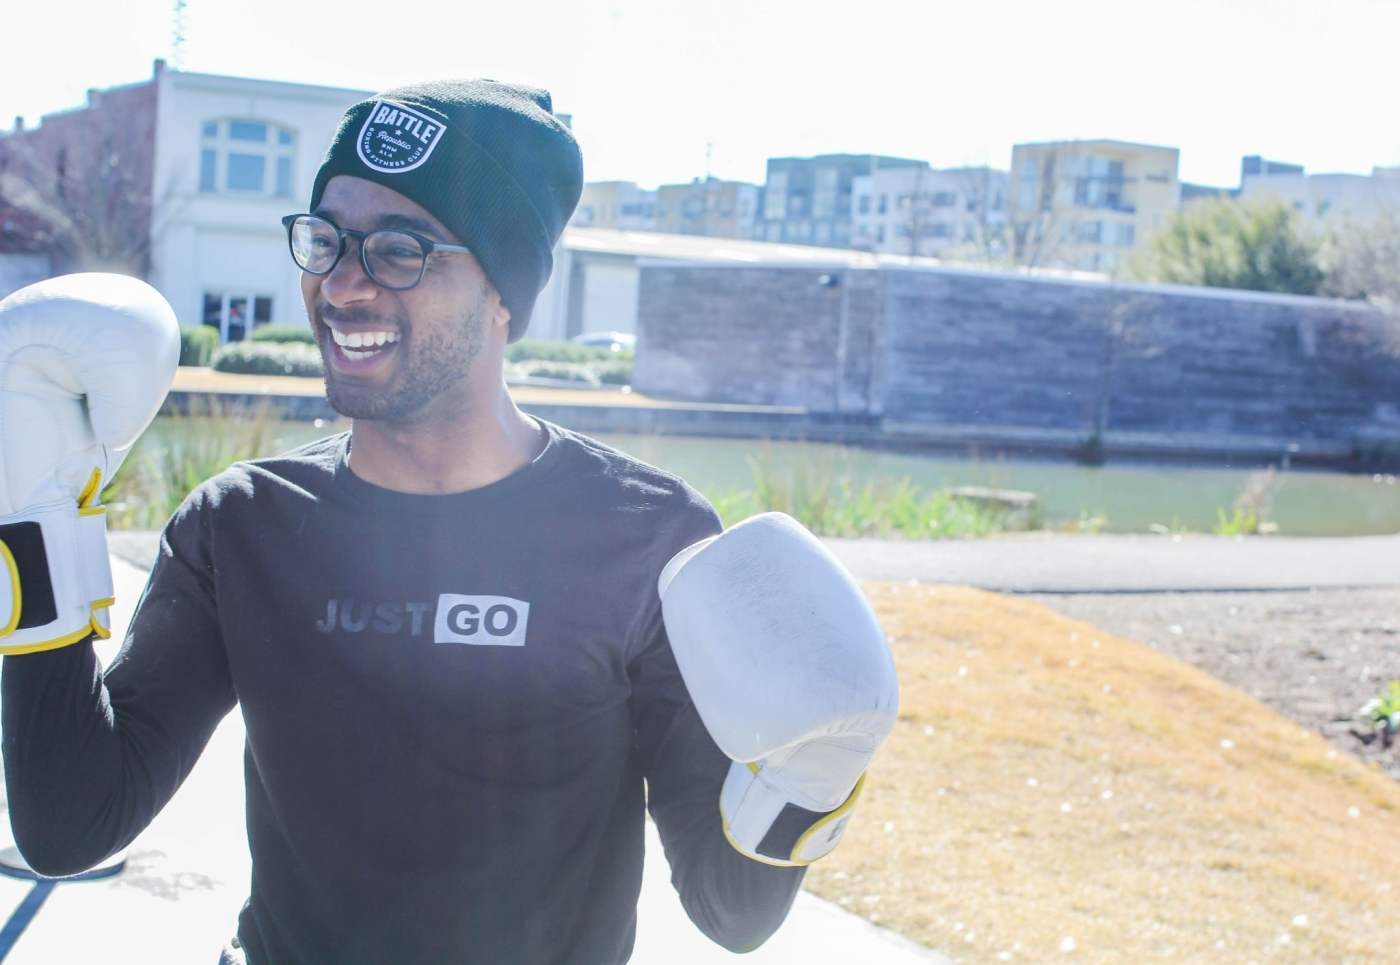 man with boxing gloves and hat